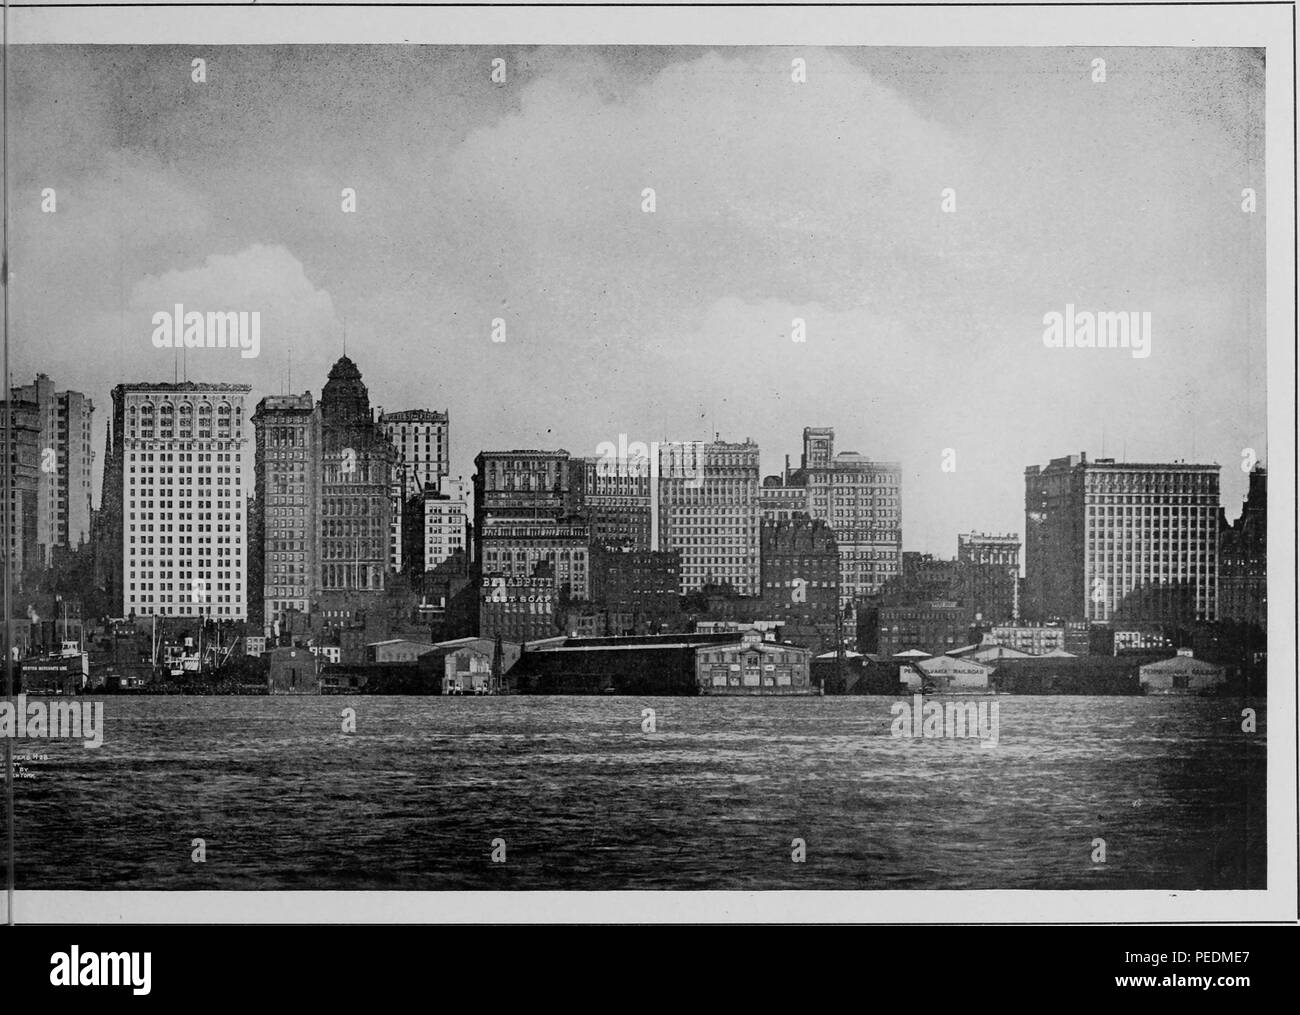 Photoengraving of the New York City skyline, New York Harbor visible in the foreground, 1912. Courtesy Internet Archive. () - Stock Image